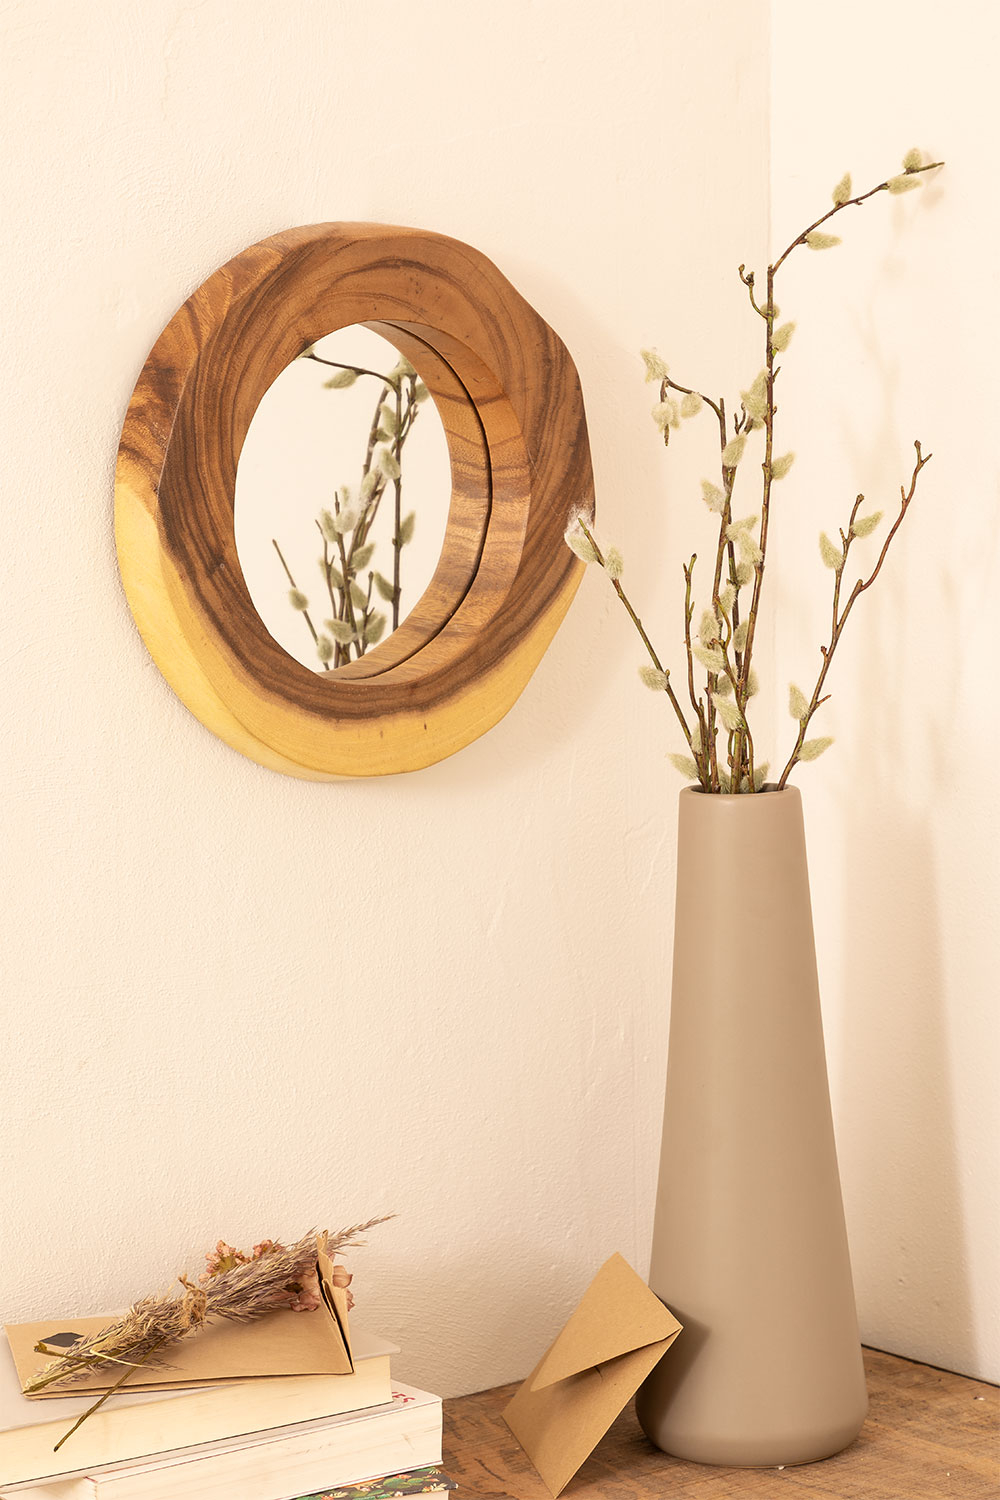 Round Wall Mirror in Wood (33.5x30.5 cm) Vrao, gallery image 1